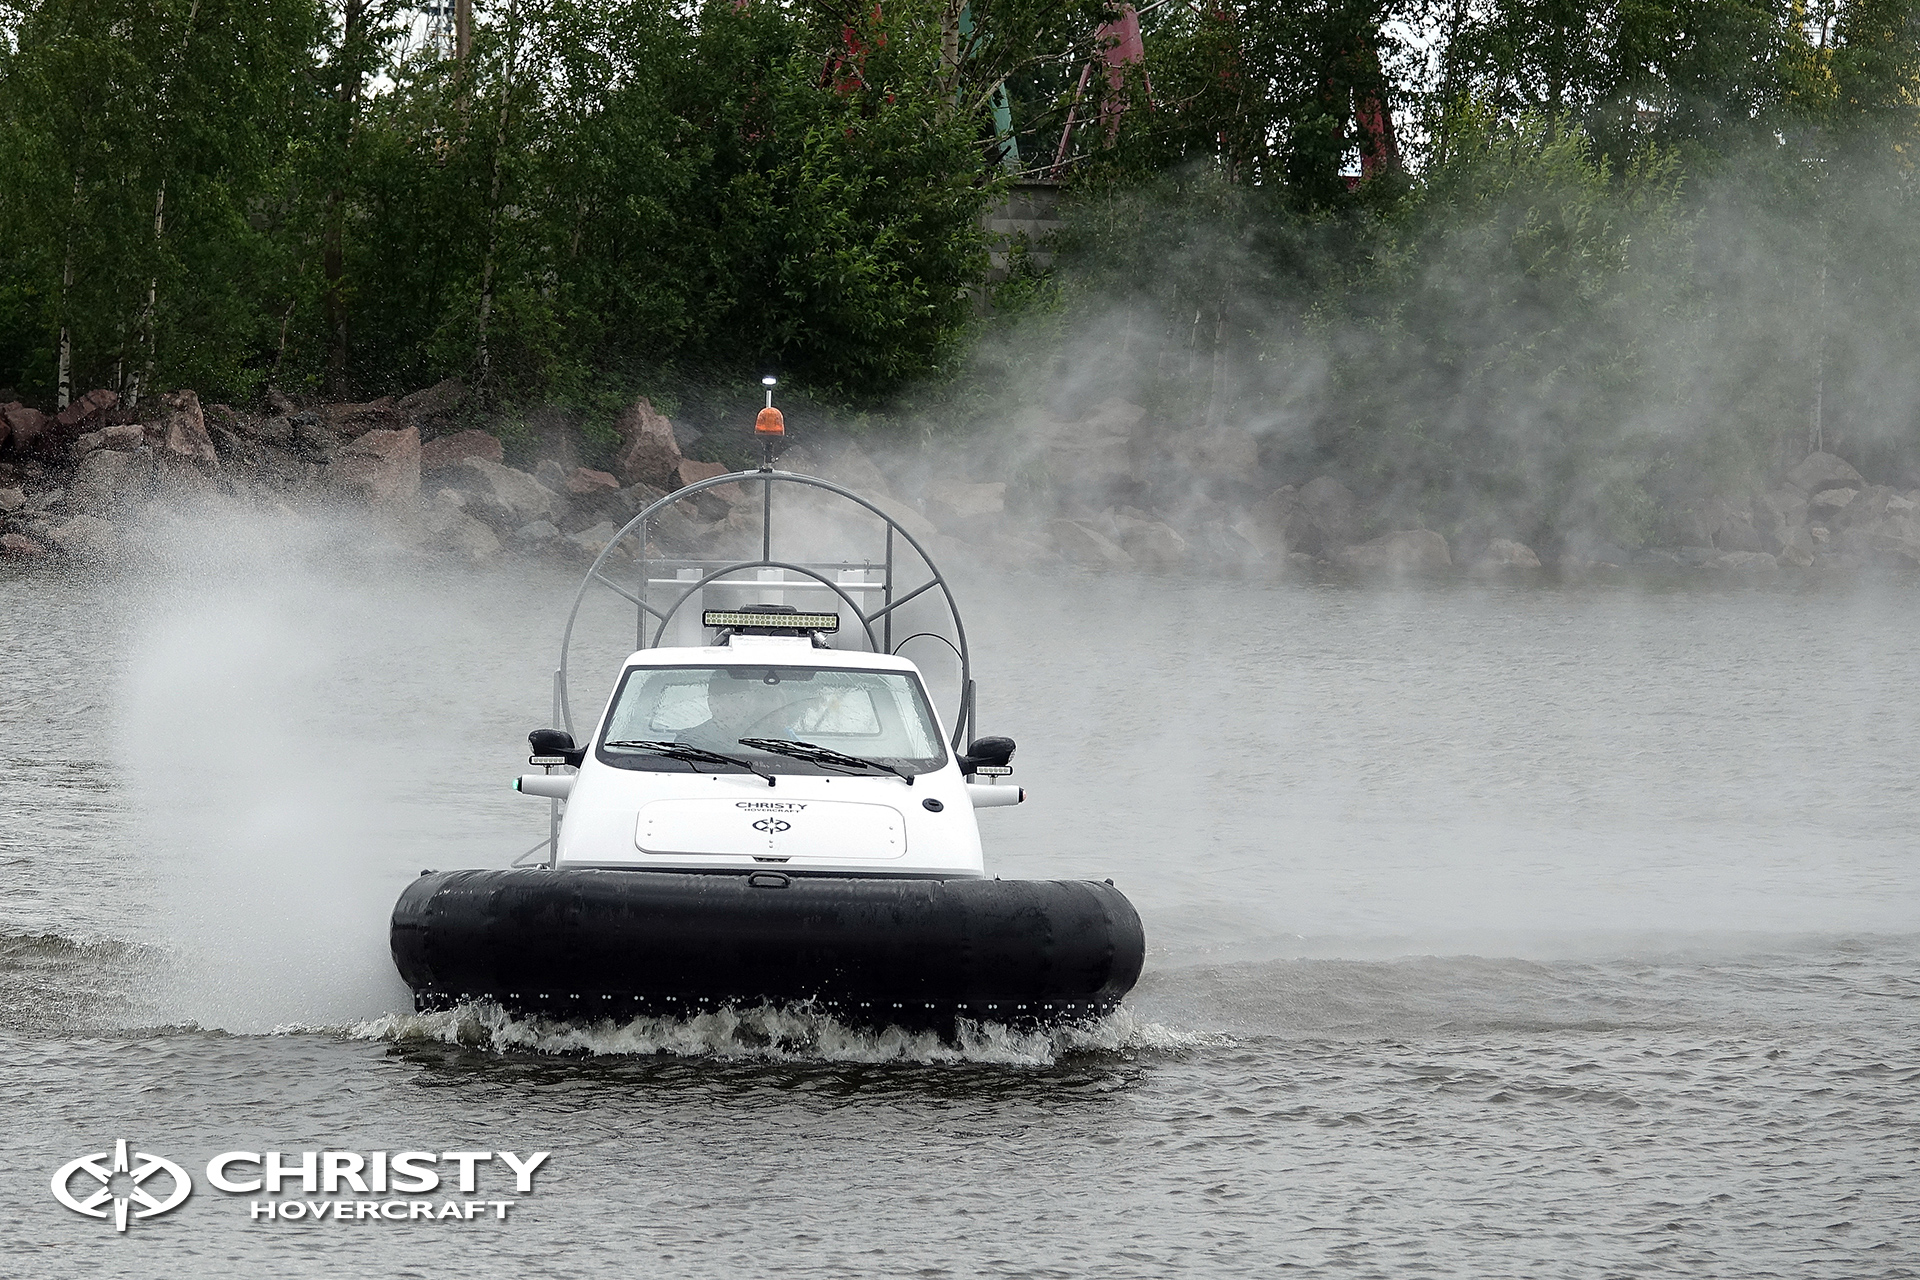 Hovercraft Christy 463 PC in Storm 290618 06.jpg | фото №4